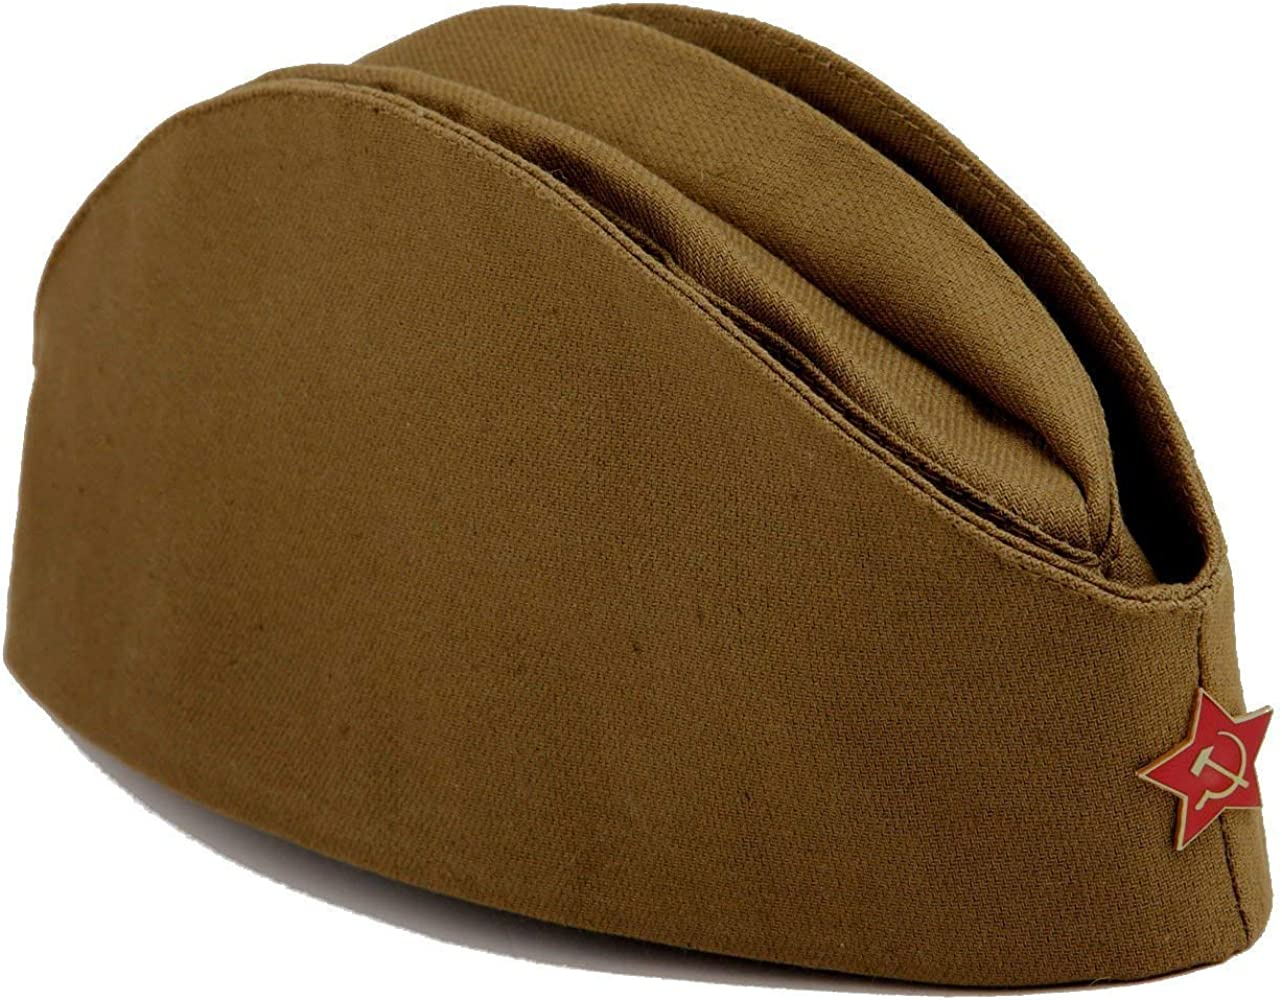 bb1ea87de USSR Military WW2 Side Cap/Soviet Hat Pilotka Khaki Russian Army incl. Red  Star